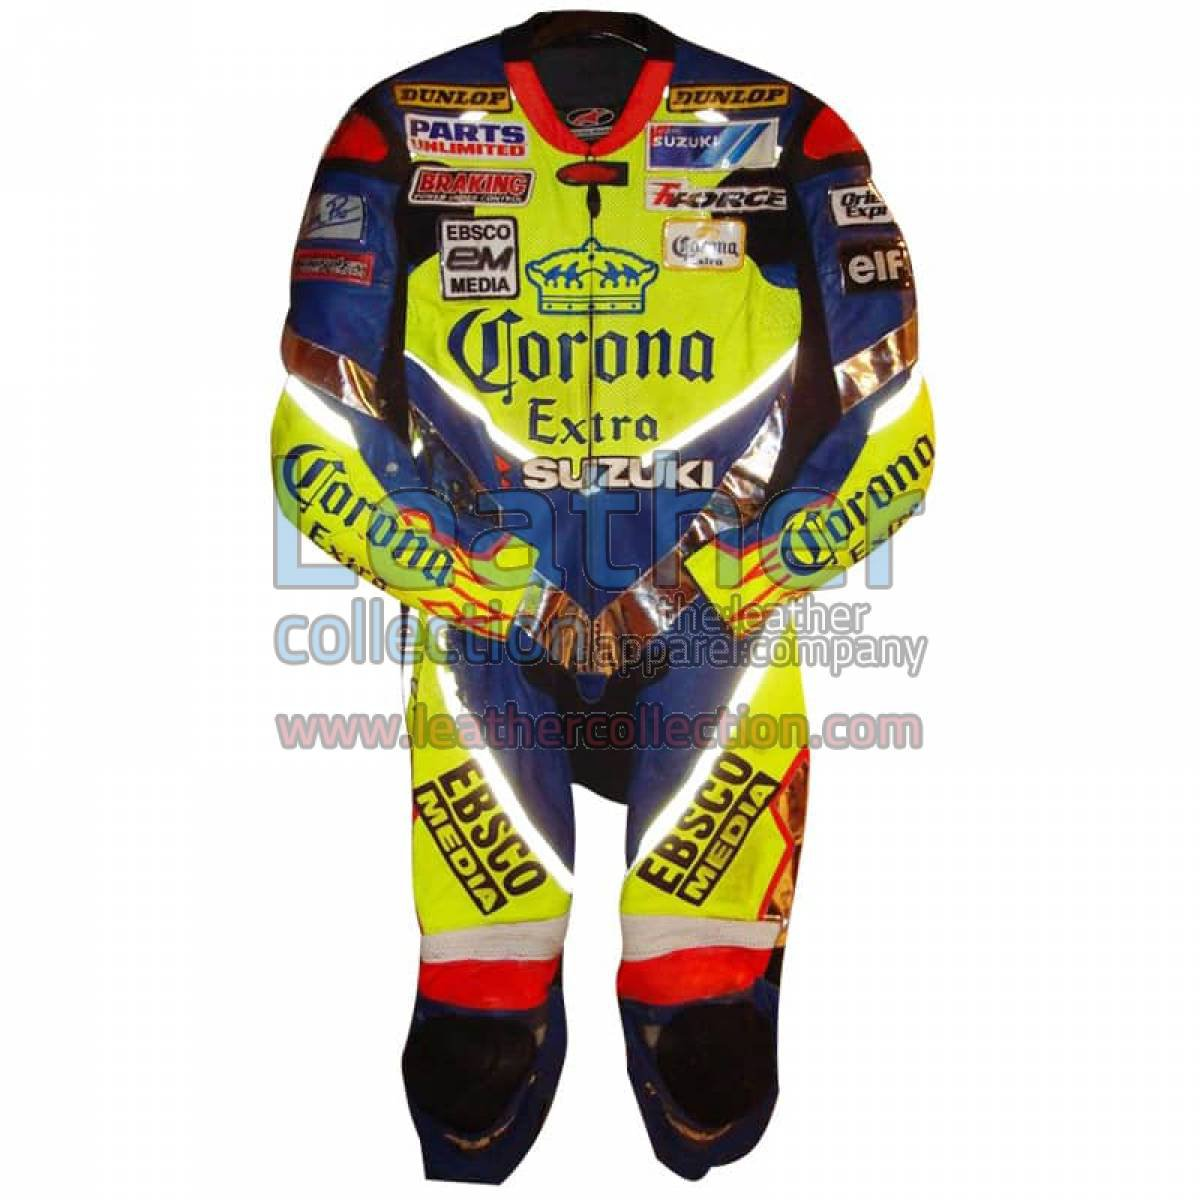 Anthony Gobert 2003 Corona Suzuki Leathers